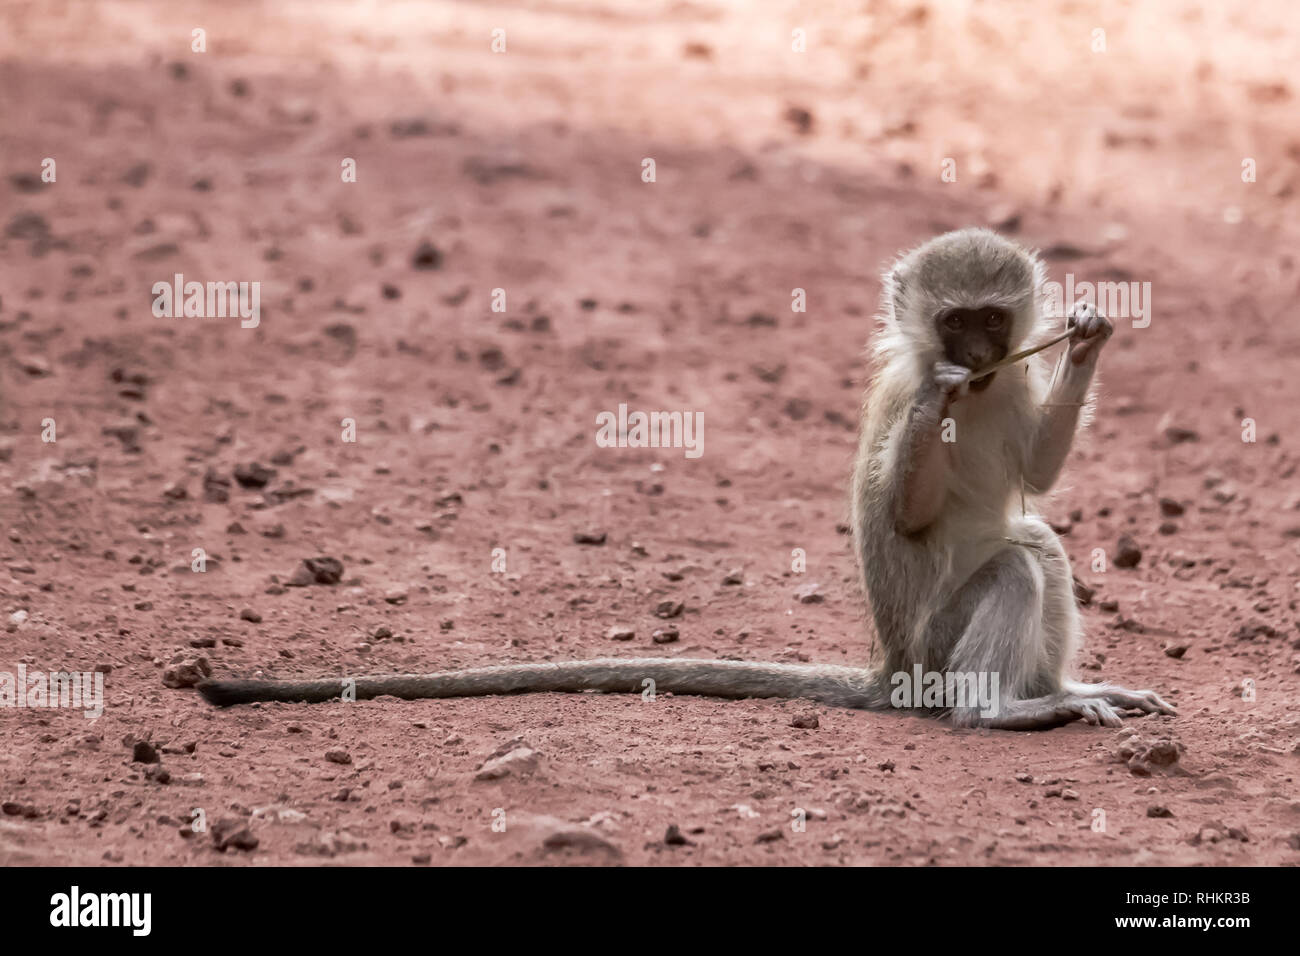 Young vervet monkey on the road - Stock Image